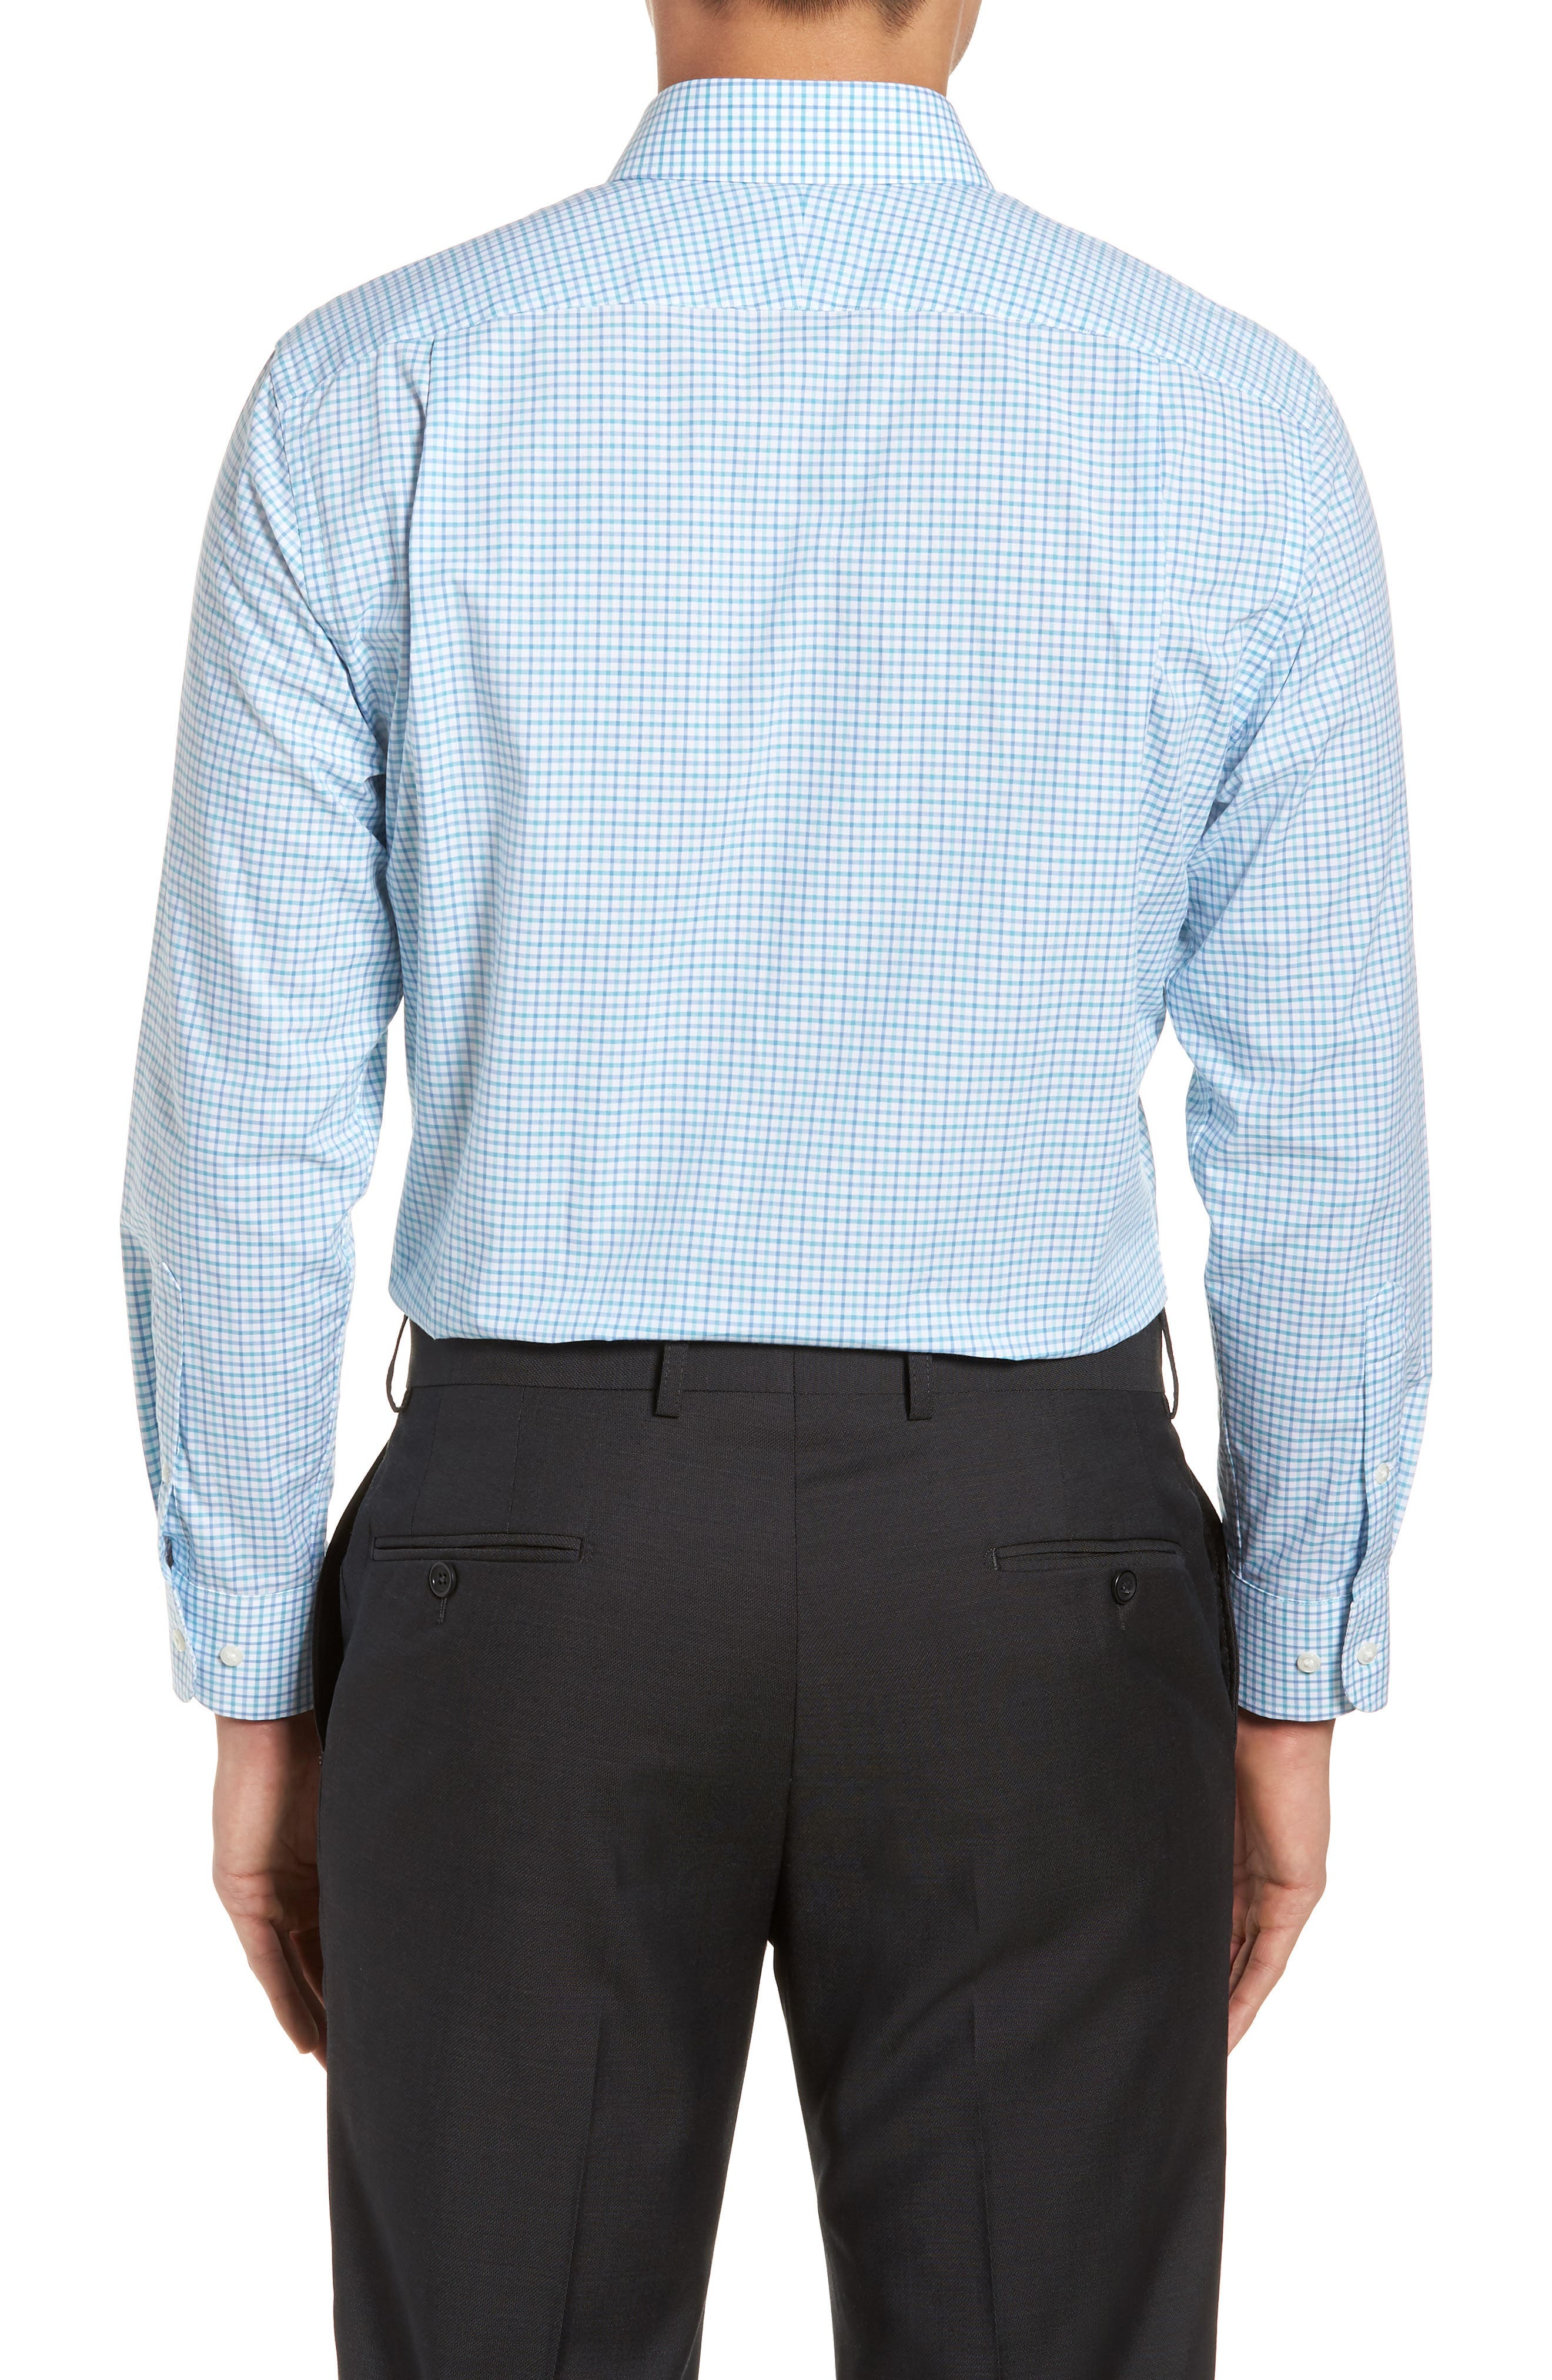 Alternate Image 3  - Nordstrom Men's Shop Trim Fit Check Dress Shirt